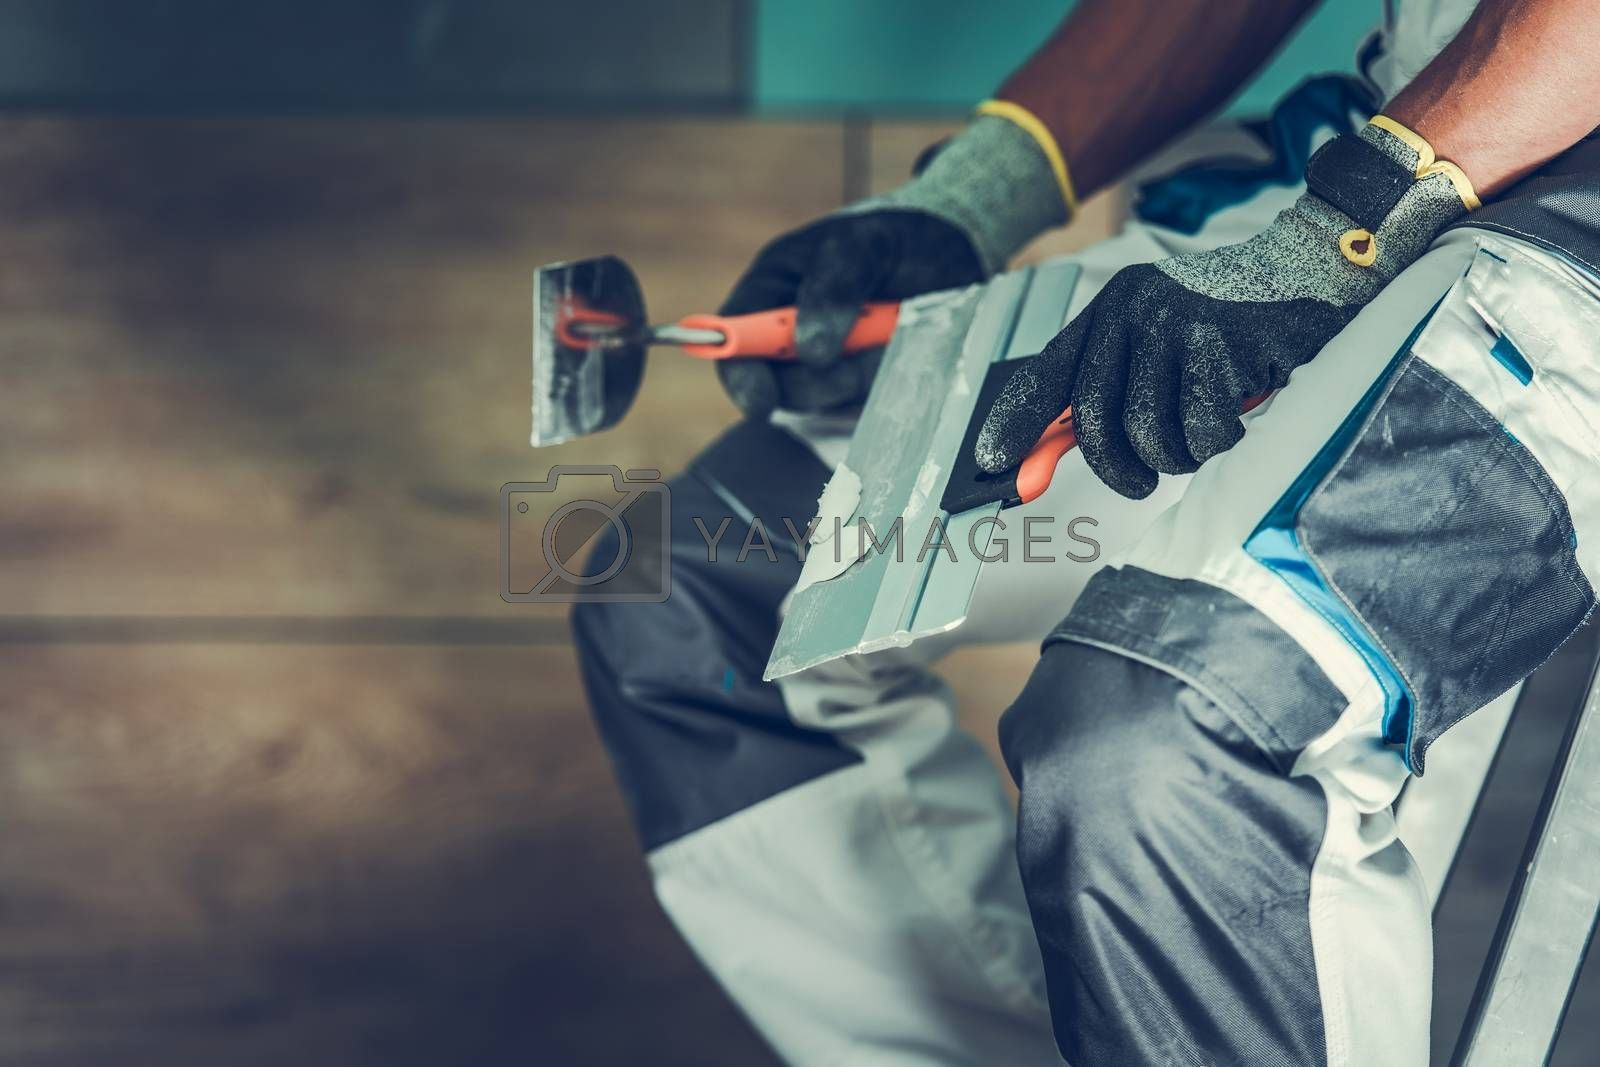 Tiles Installer Contractor with Tools. Closeup Photo. Construction Theme.